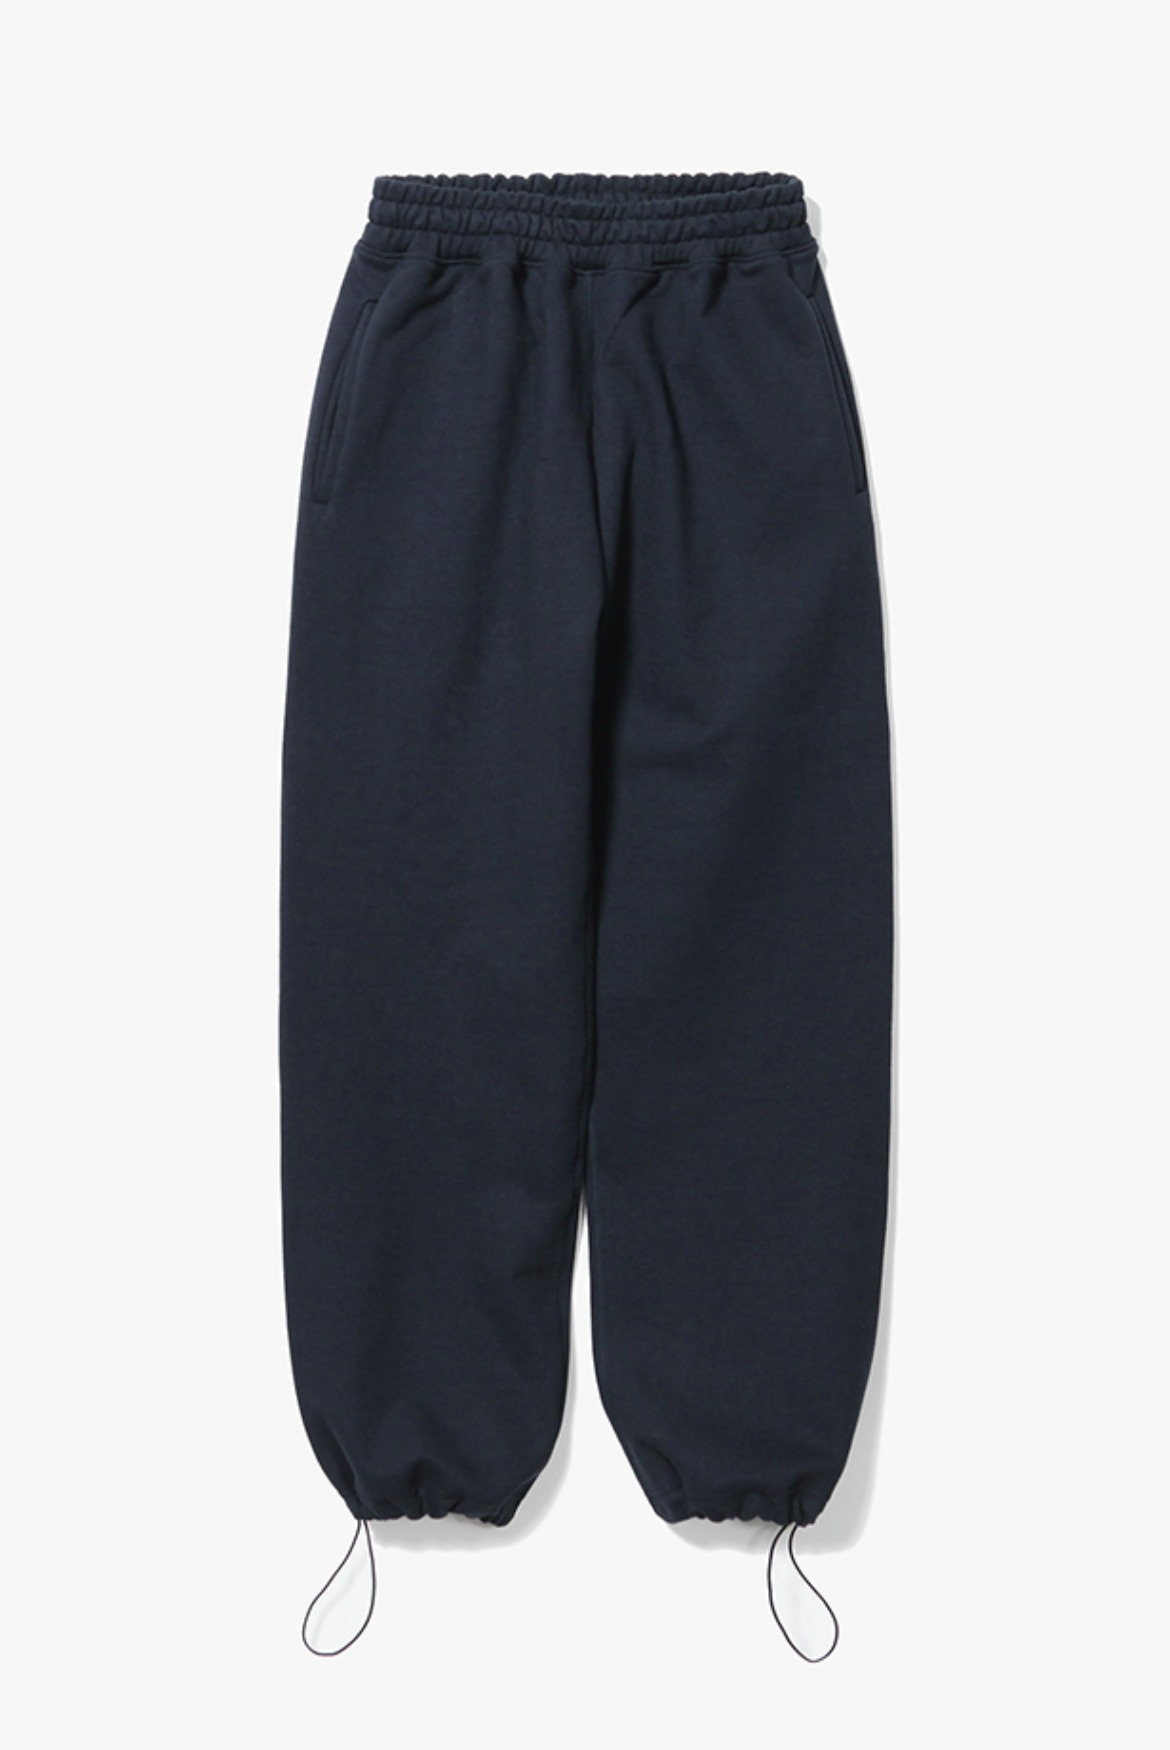 Classic String Sweat Pants [Navy]